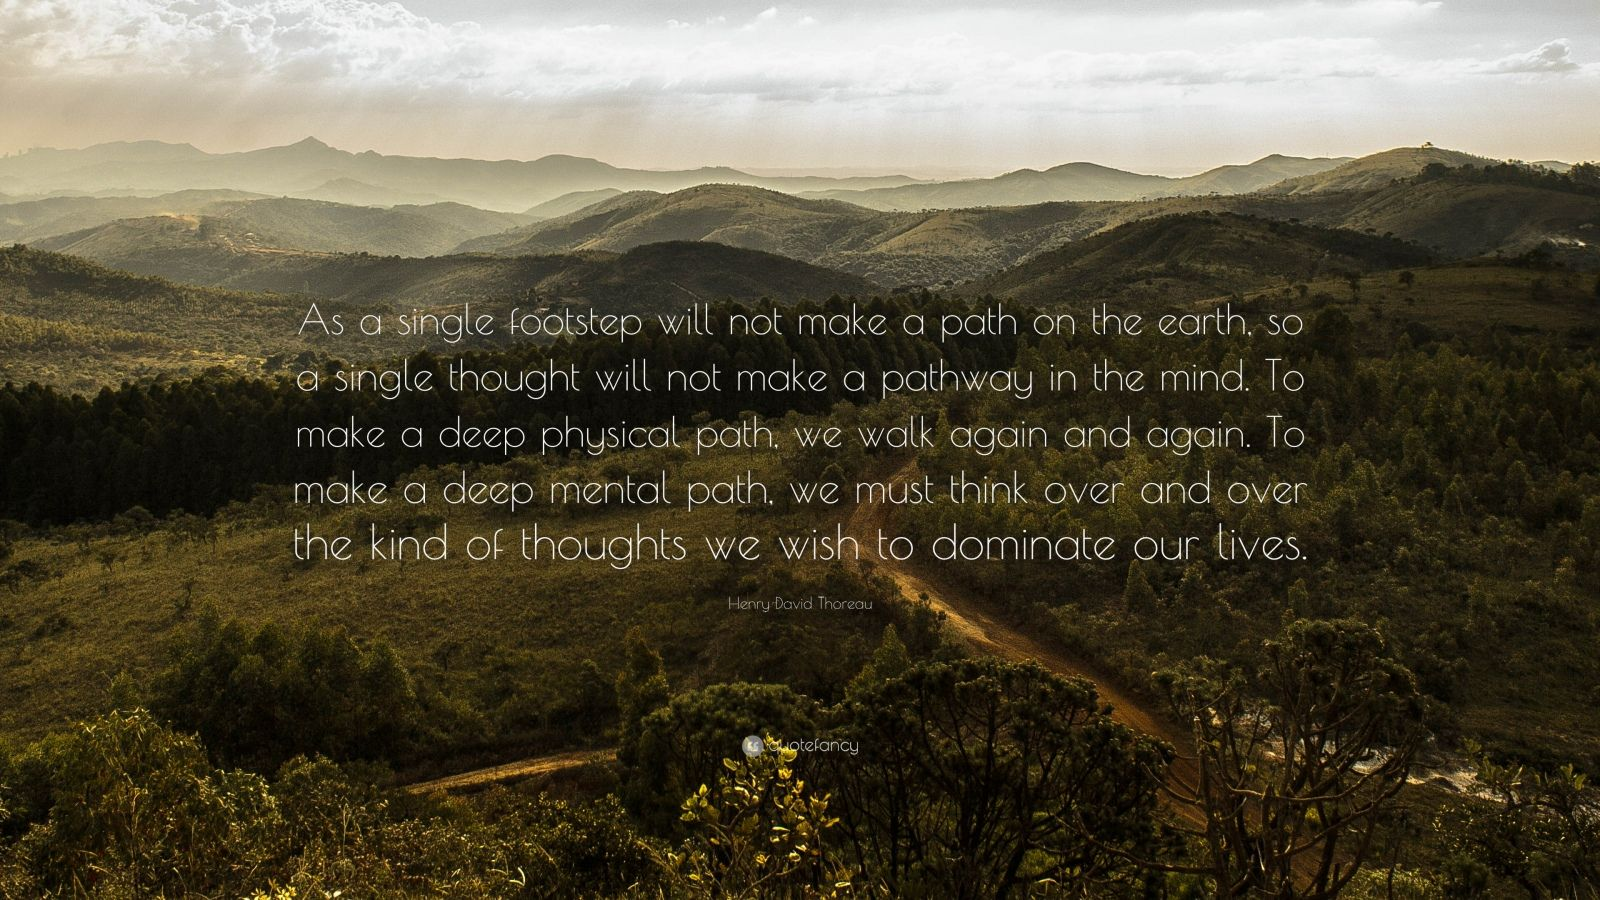 """Henry David Thoreau Quote: """"As a single footstep will not make a path on the earth, so a single thought will not make a pathway in the mind.  To make a deep physical path, we walk again and again.  To make a deep mental path, we must think over and over the kind of thoughts we wish to dominate our lives."""""""